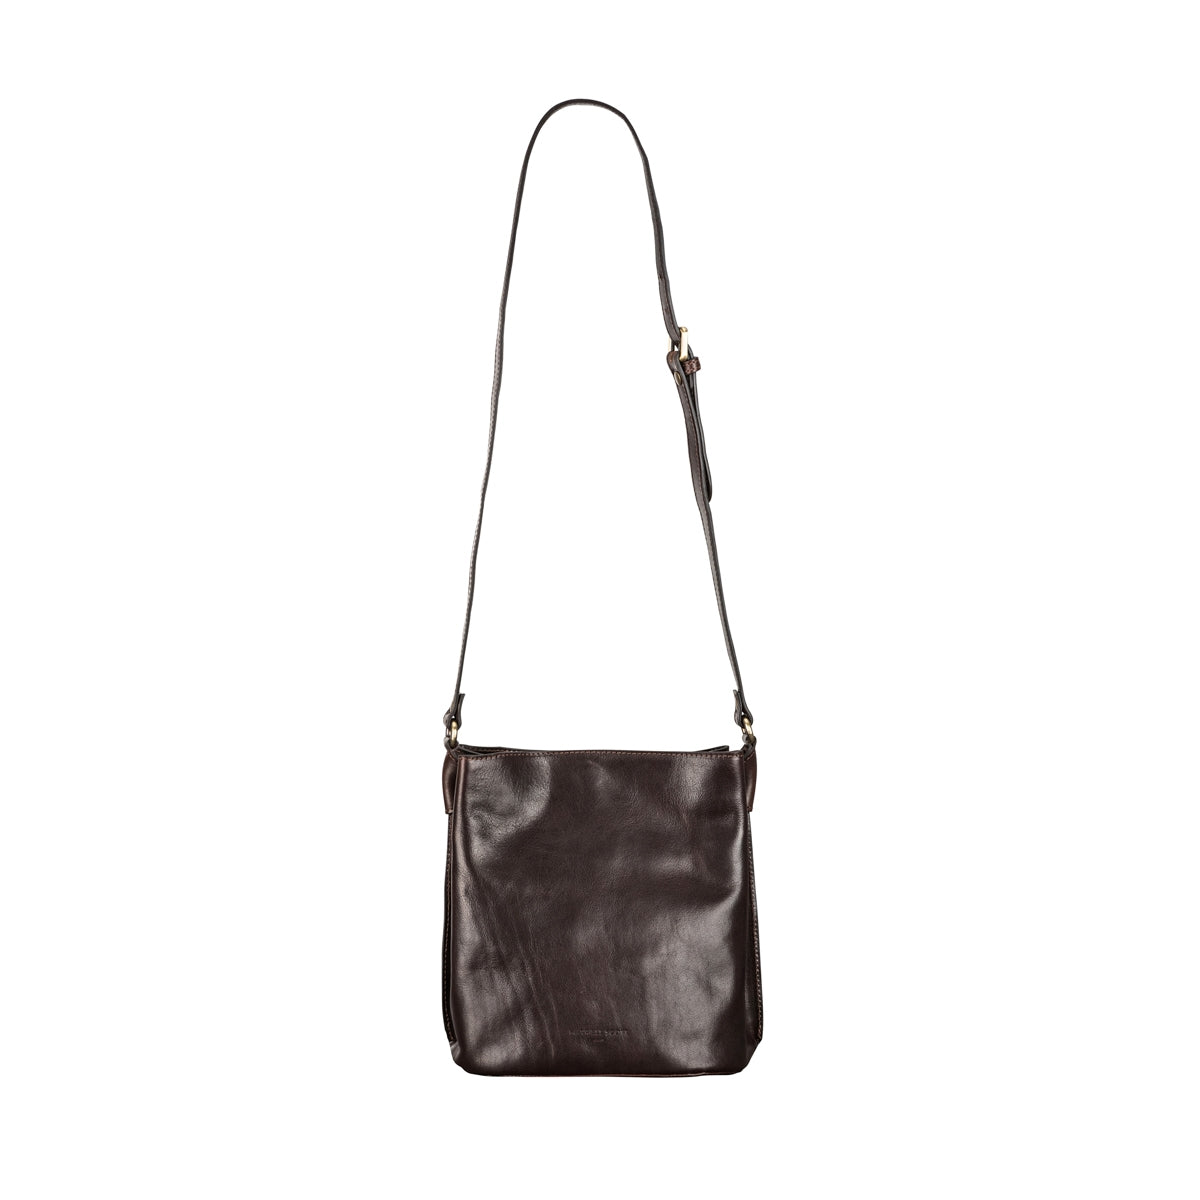 Image 4 of the 'Palermo' Handmade Dark Chocolate Veg-Tanned Leather Shoulder Bag